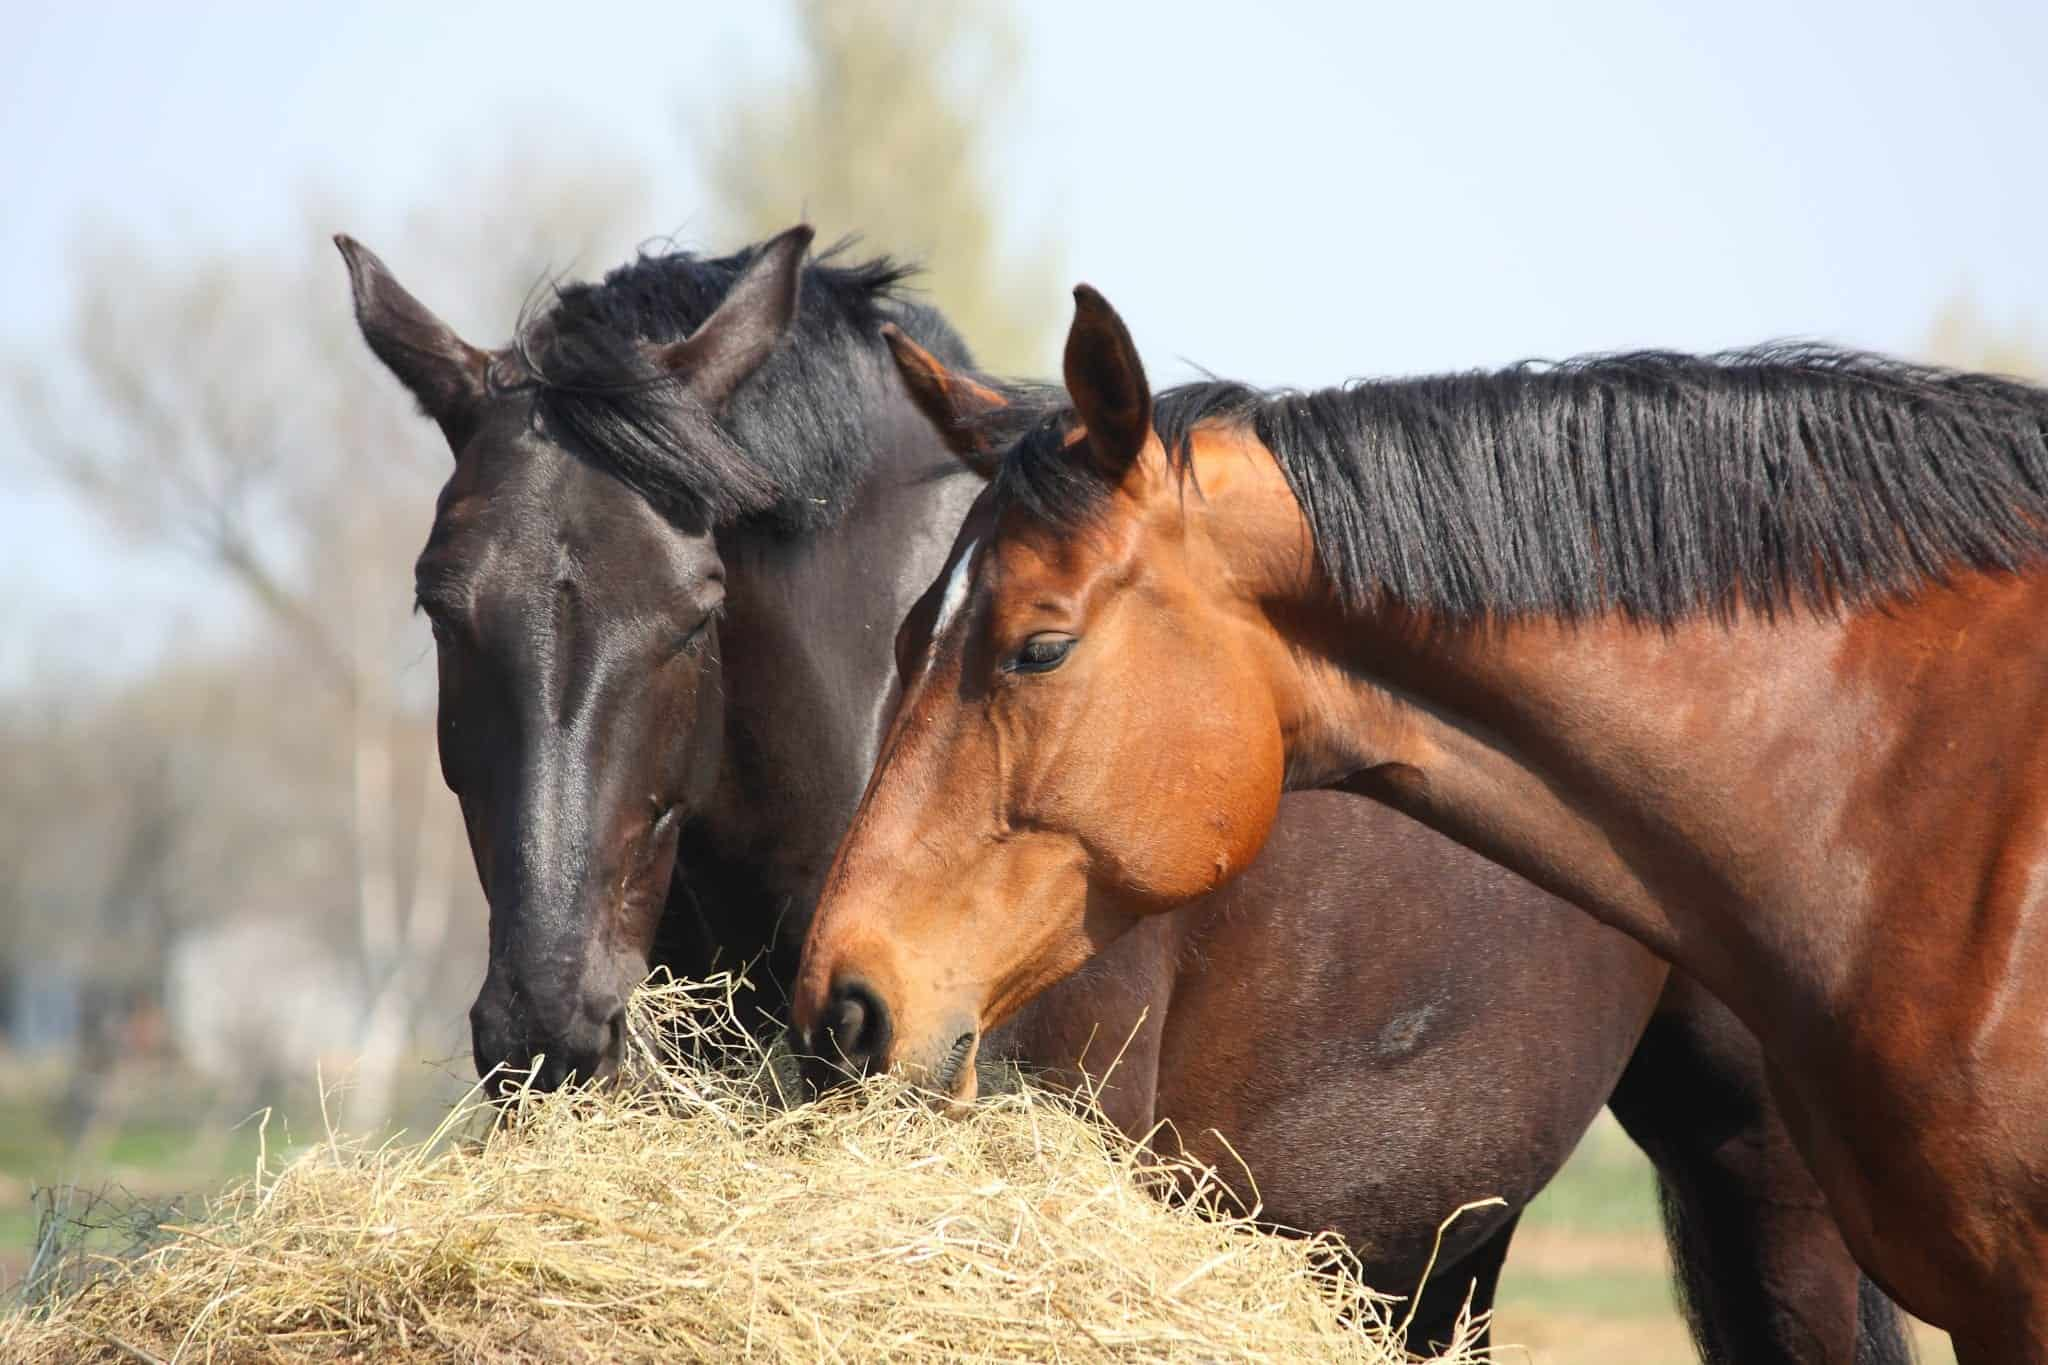 Black and chestnut horses eating hay bales